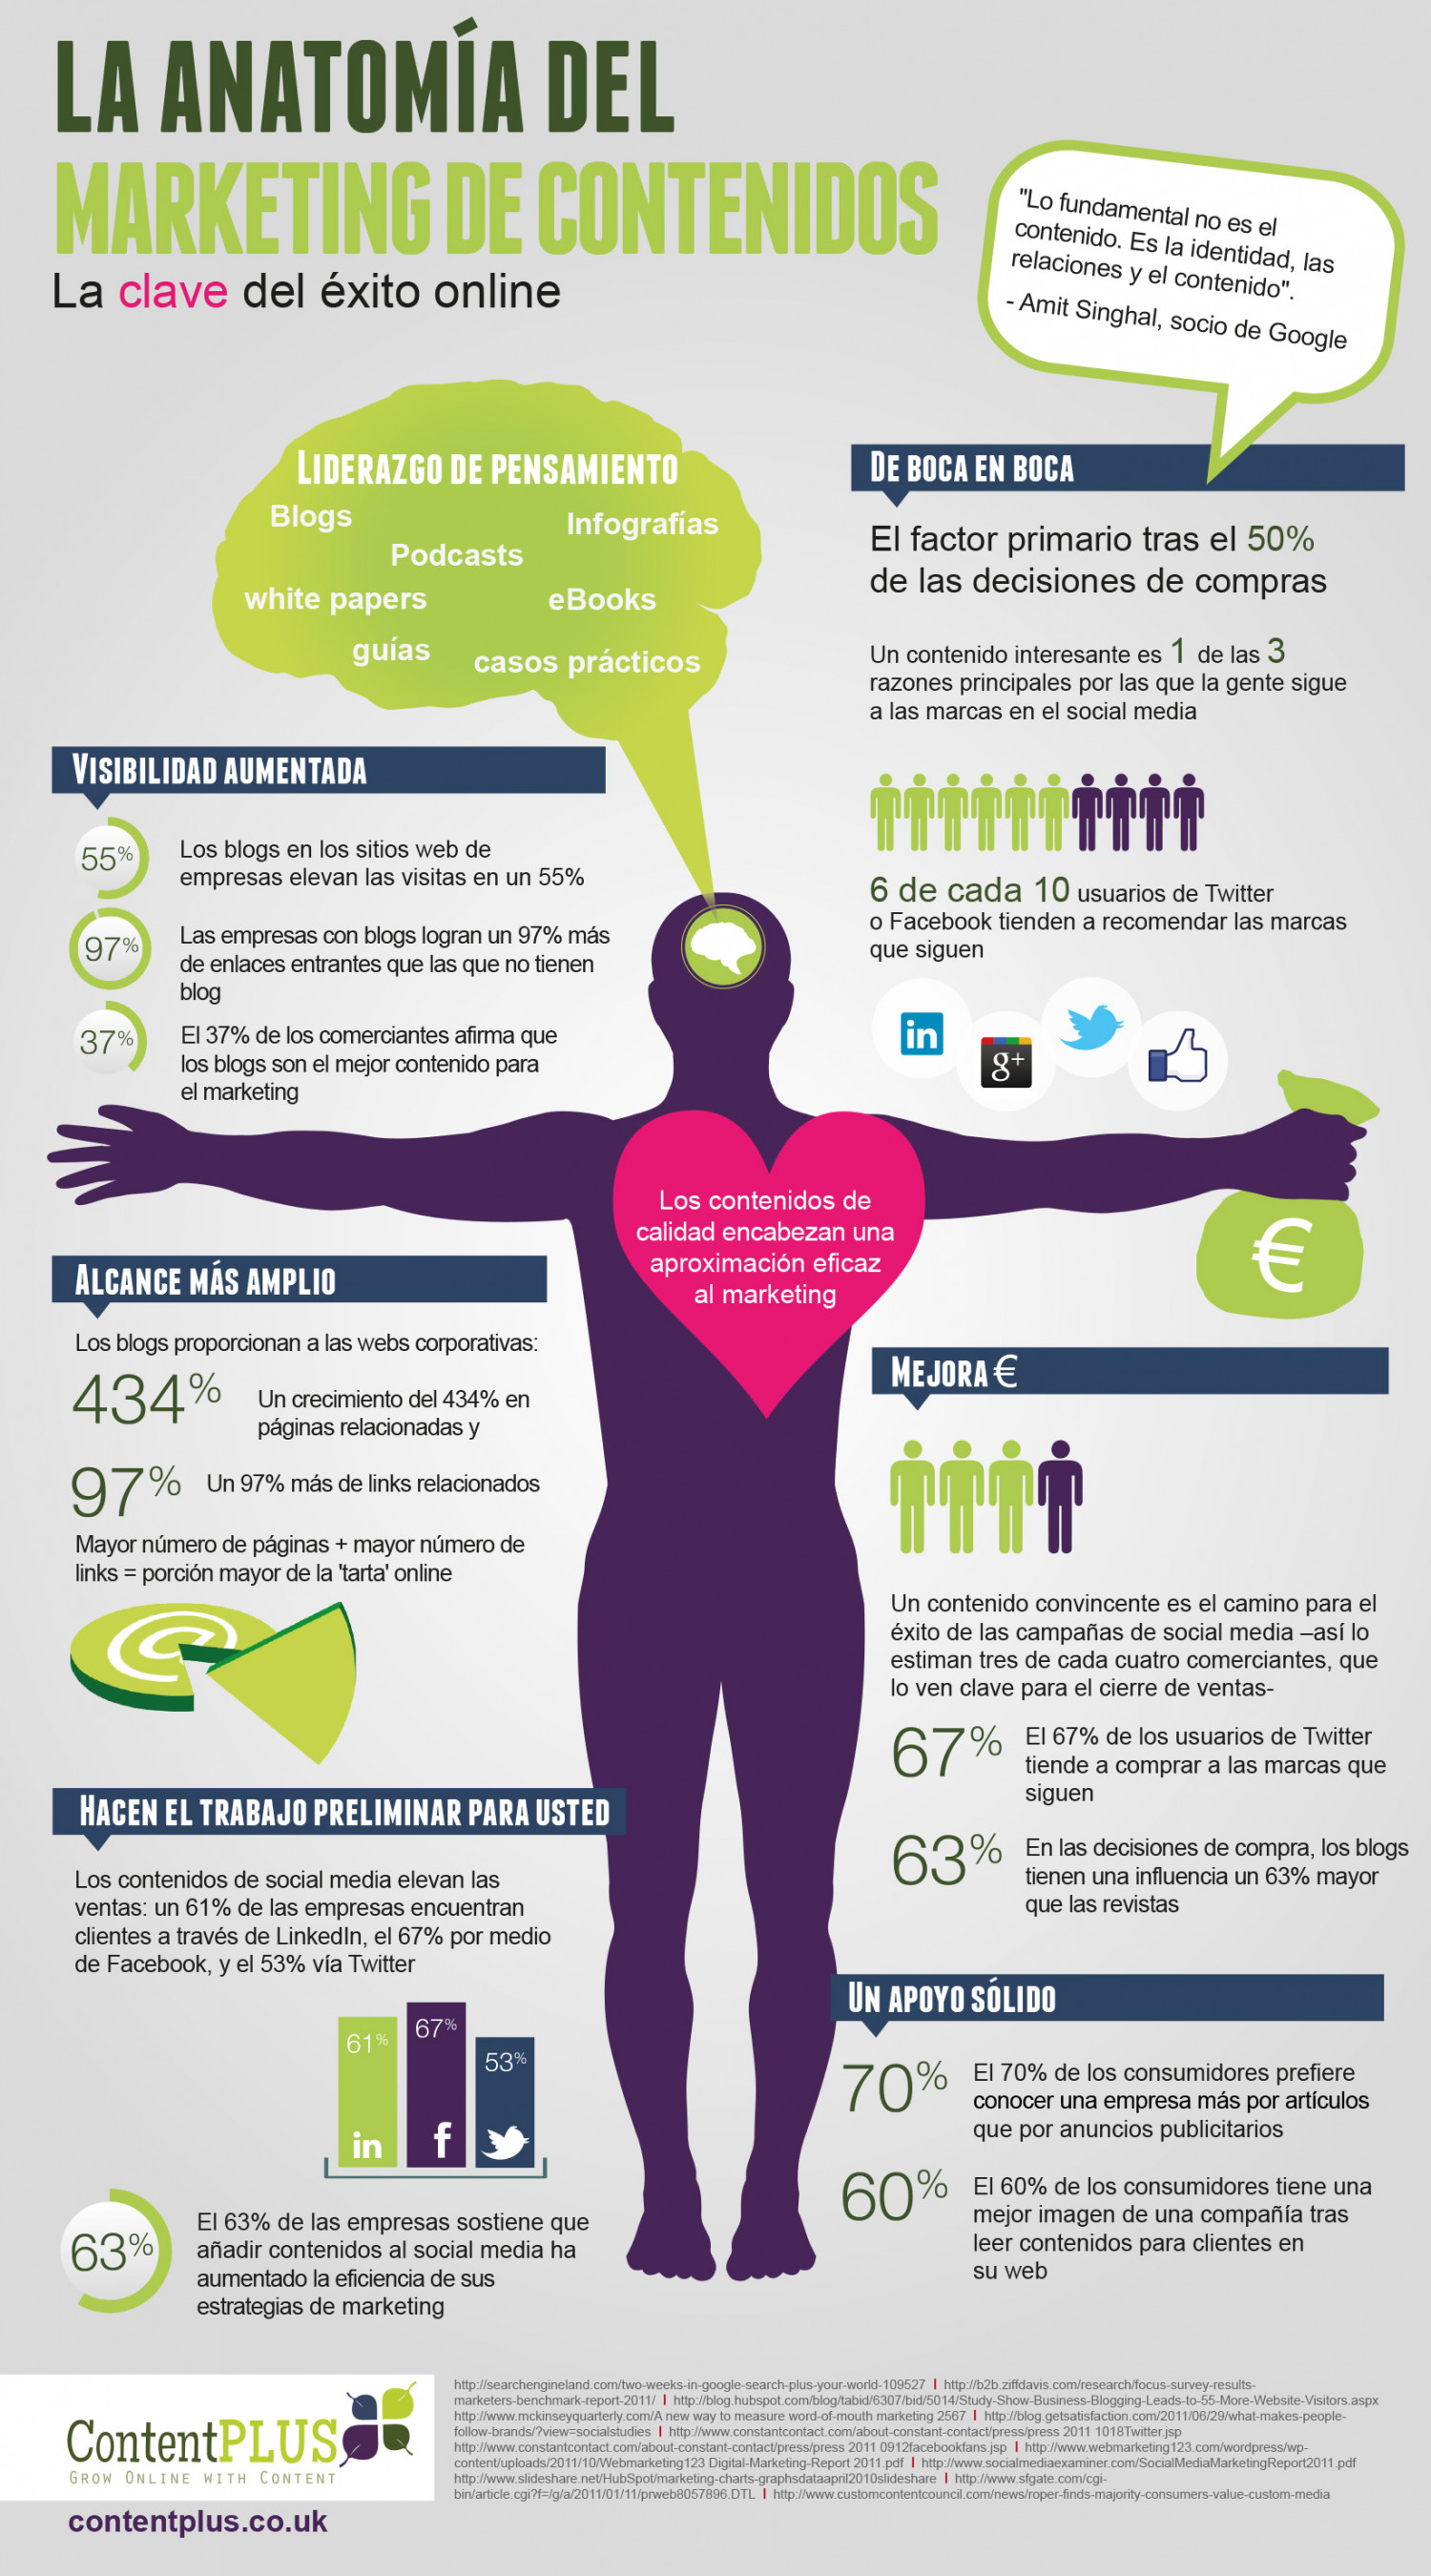 La Anatomia del Marketing de Contenidos Infographic